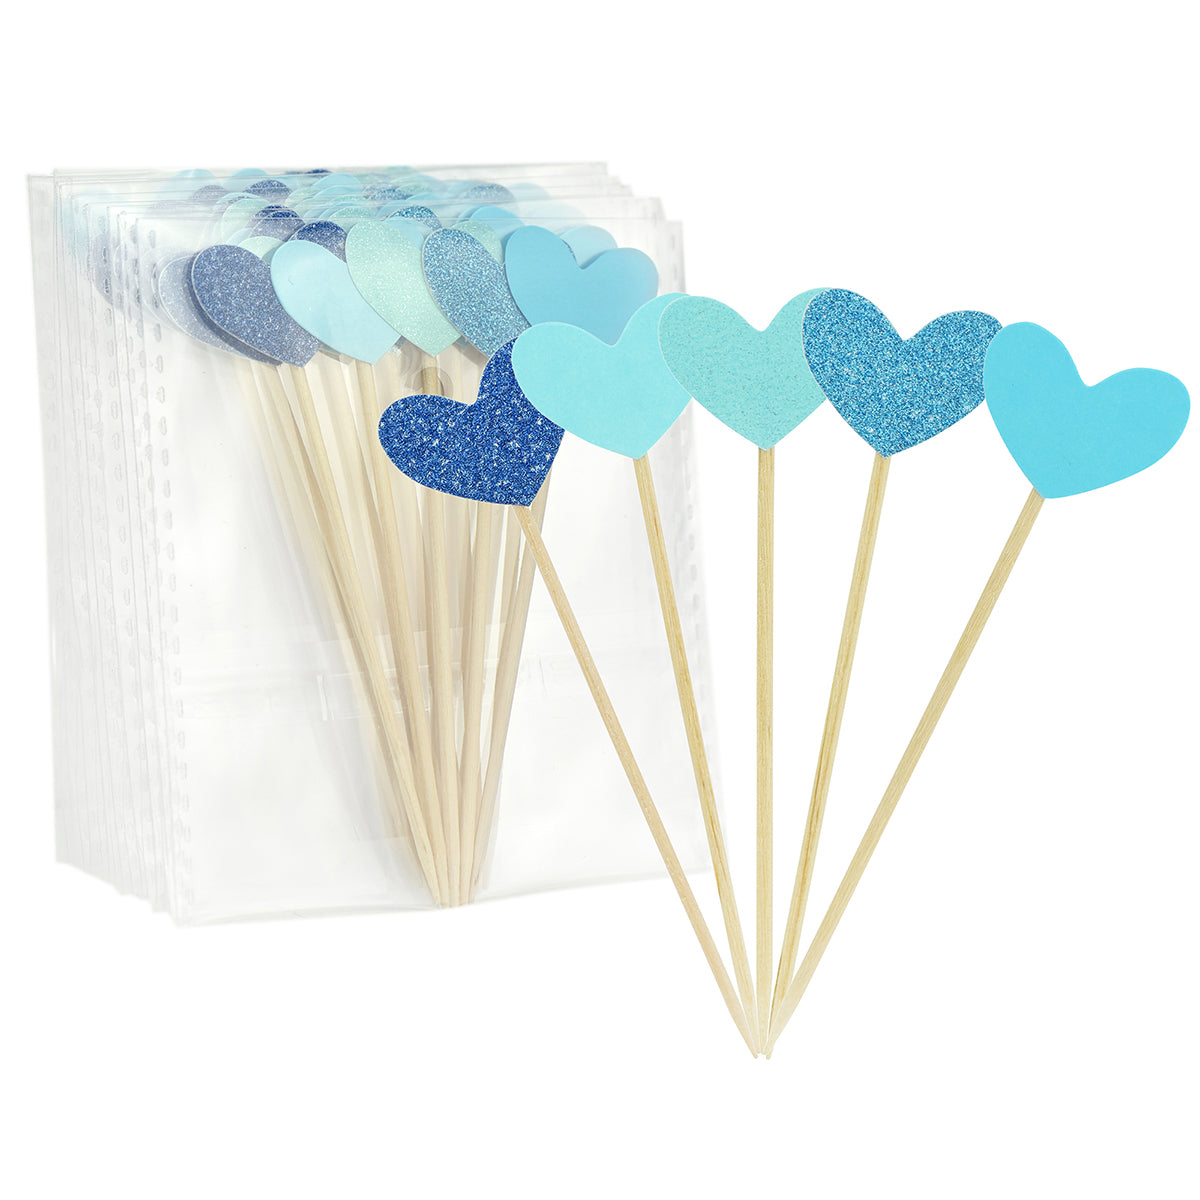 Blue Hearts Cake Topper Picks 50 Pieces